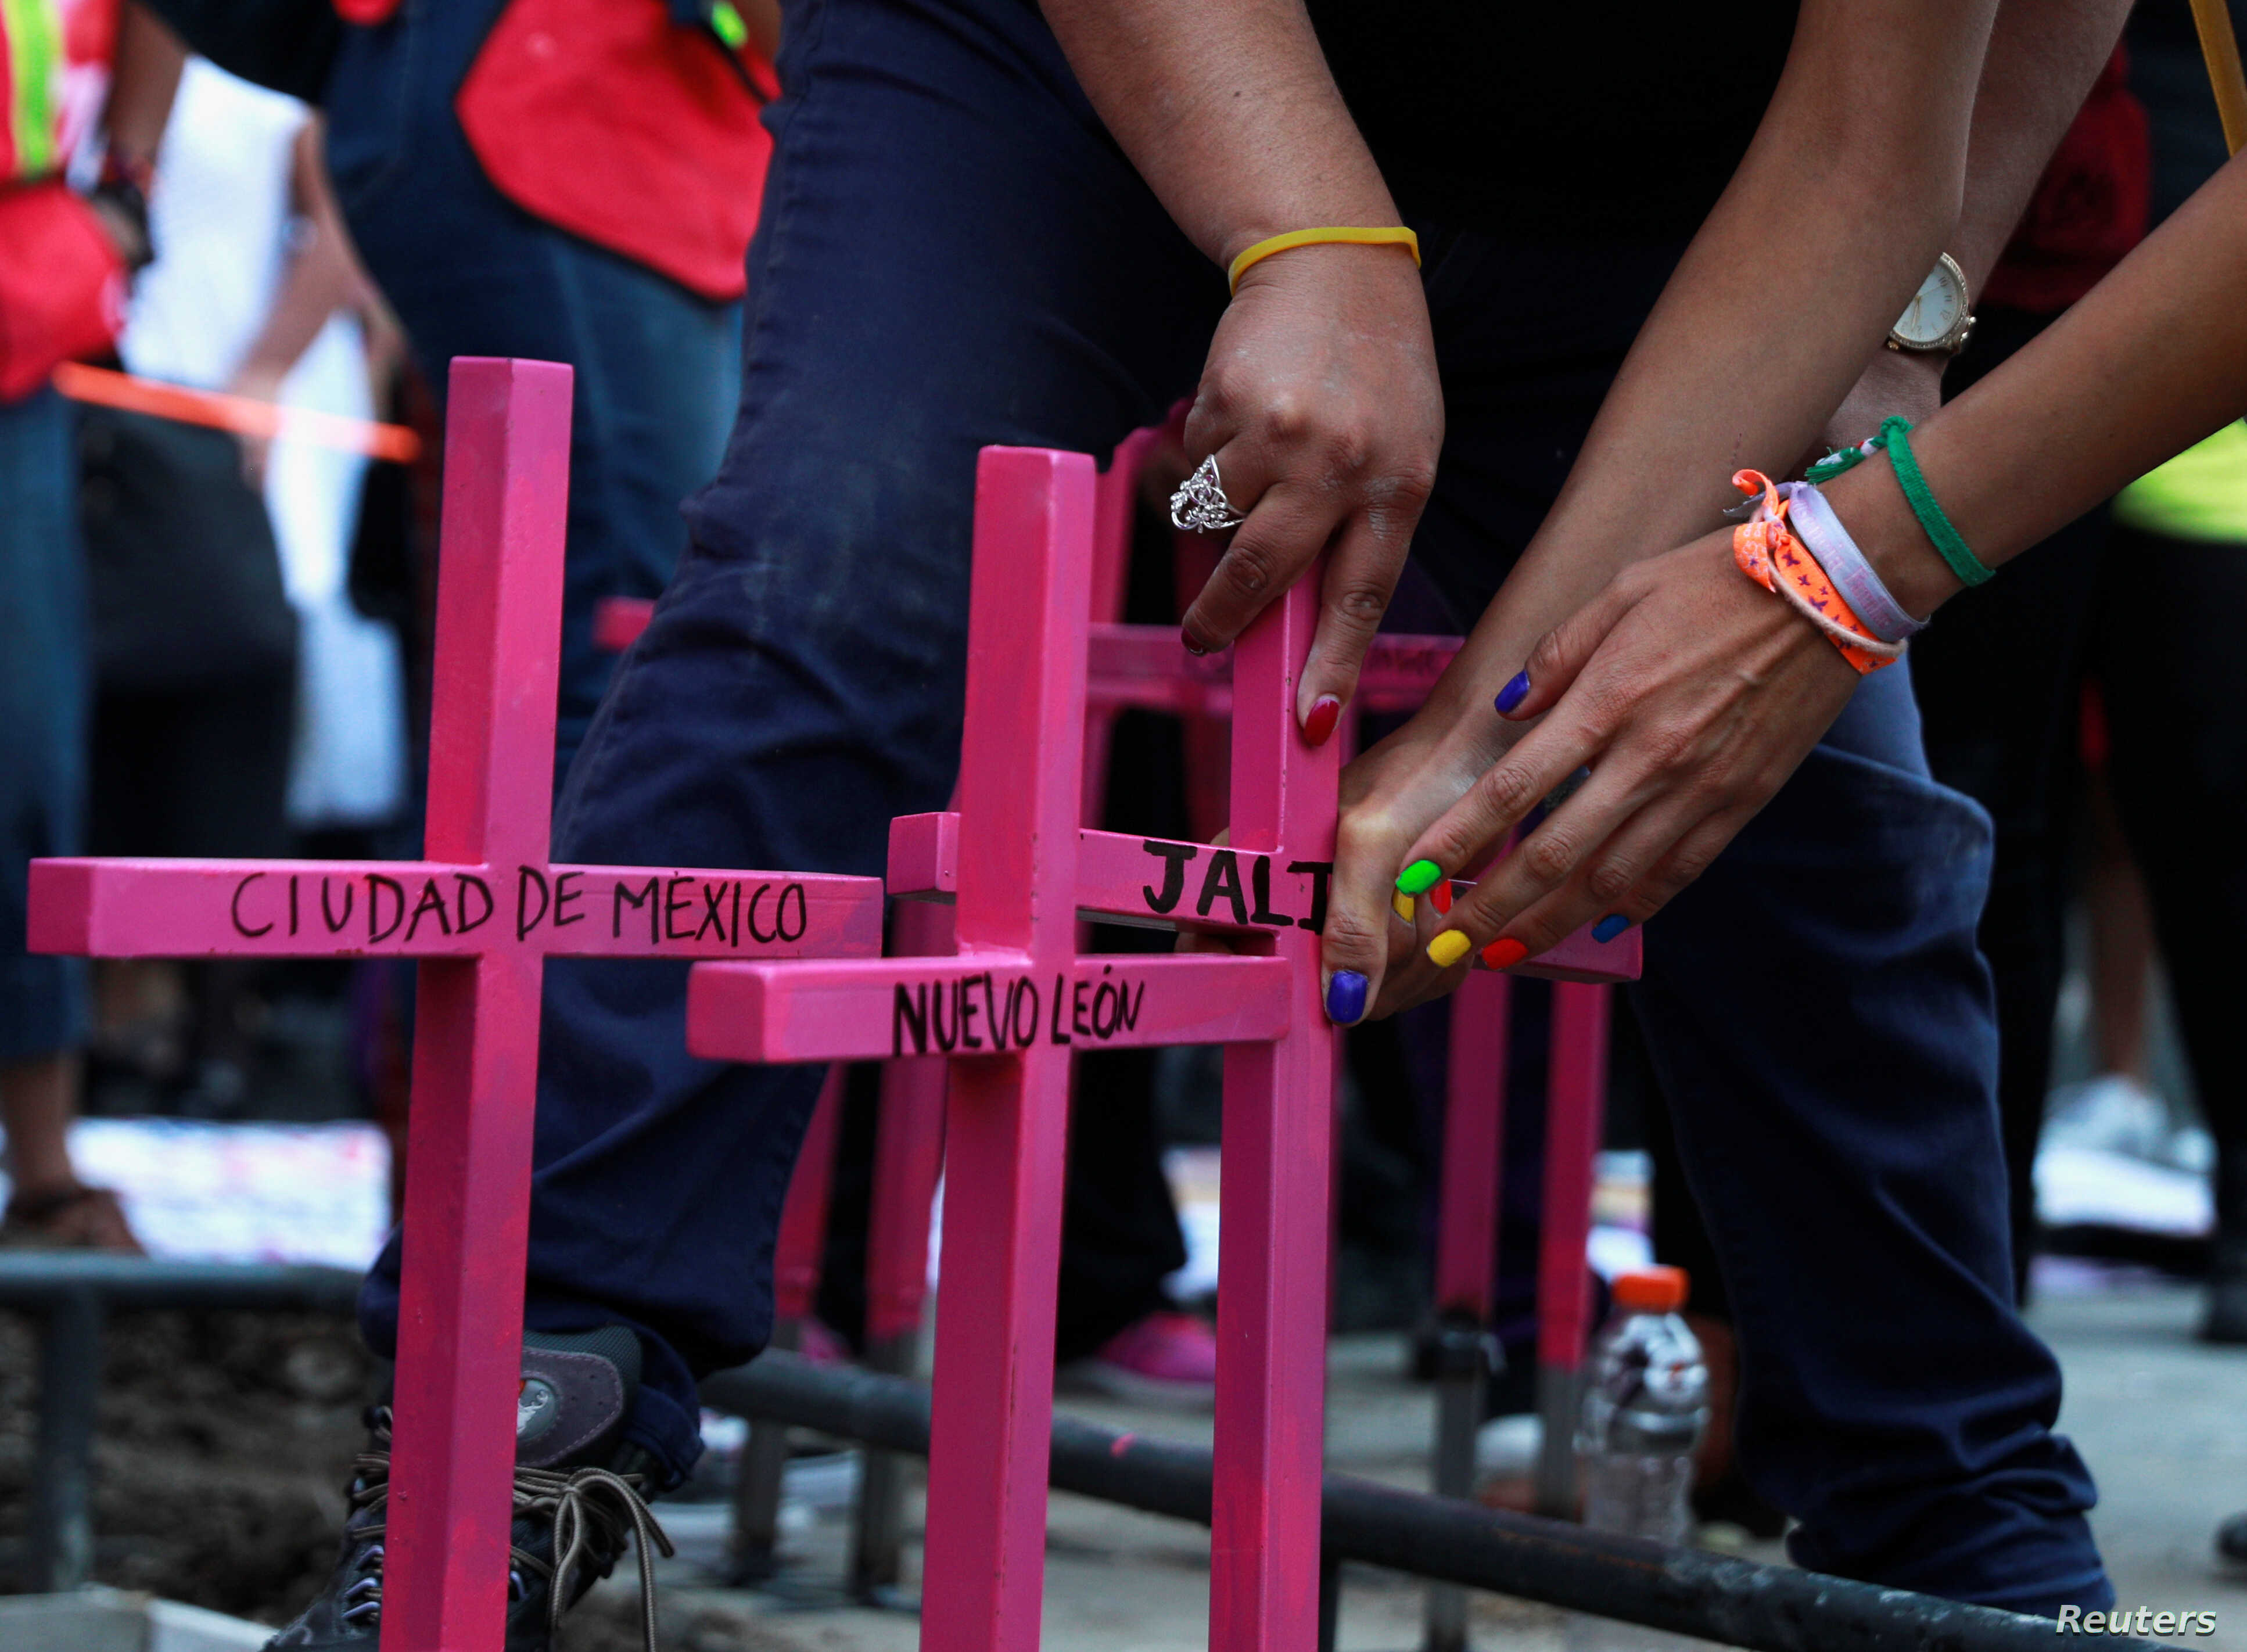 Women place pink crosses at a makeshift monument against femicide with names of the states of Mexico, during a protest against femicide and violence against women, in Mexico City, March 24, 2019.